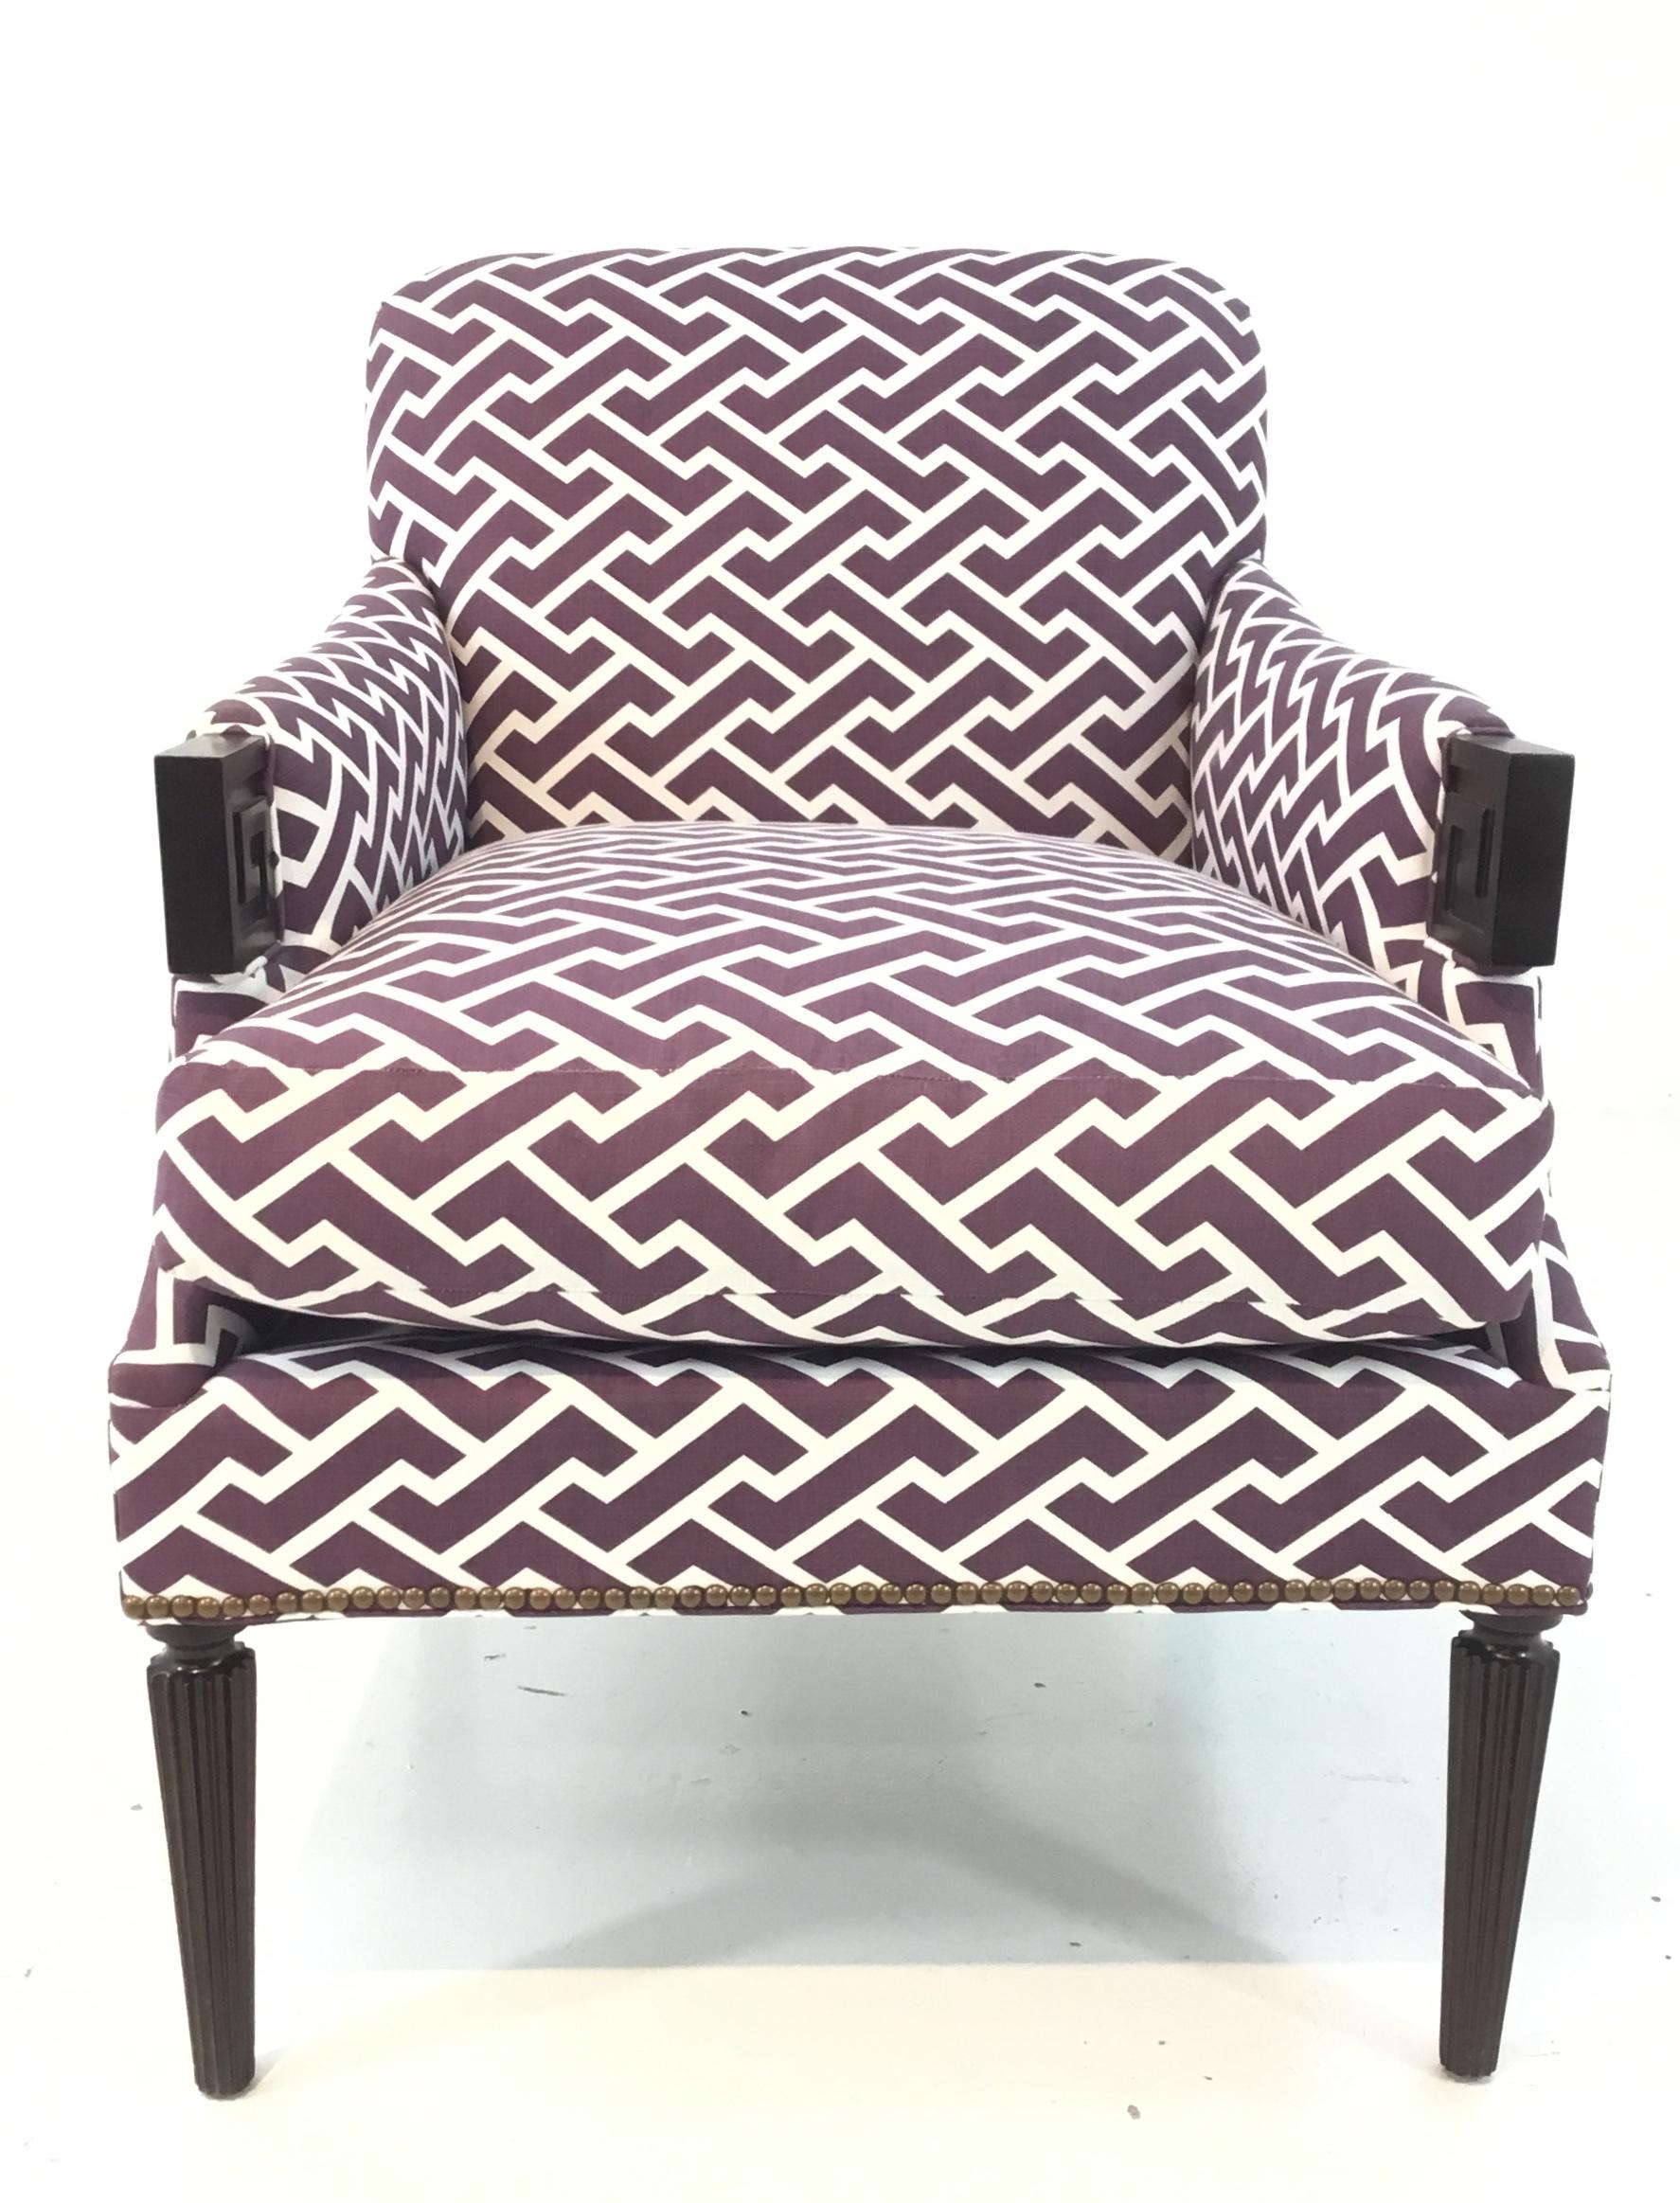 Delicieux Brass Modern Hickory Chair Purple And White Gregory Lounge Chair For Sale    Image 7 Of